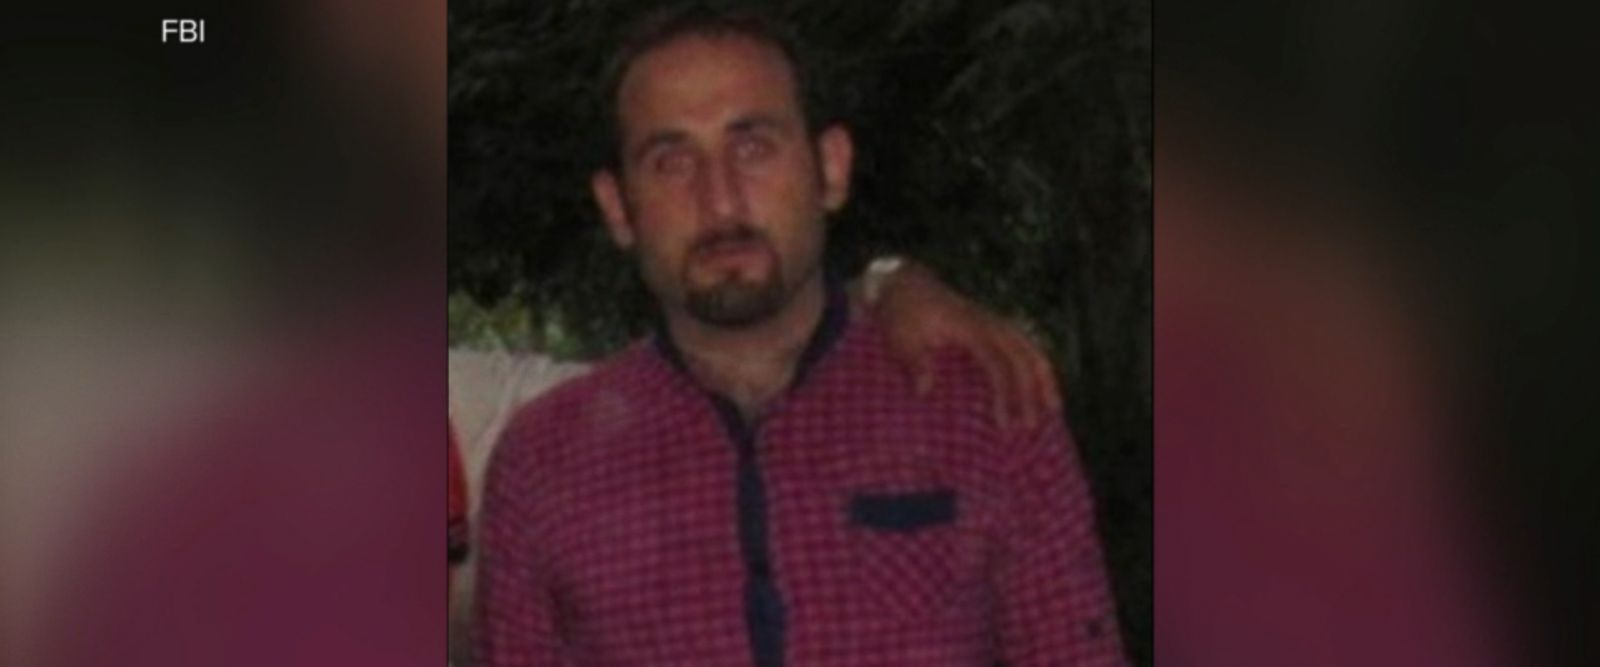 Behzad Mesri was a self-professed expert in computer hacking.